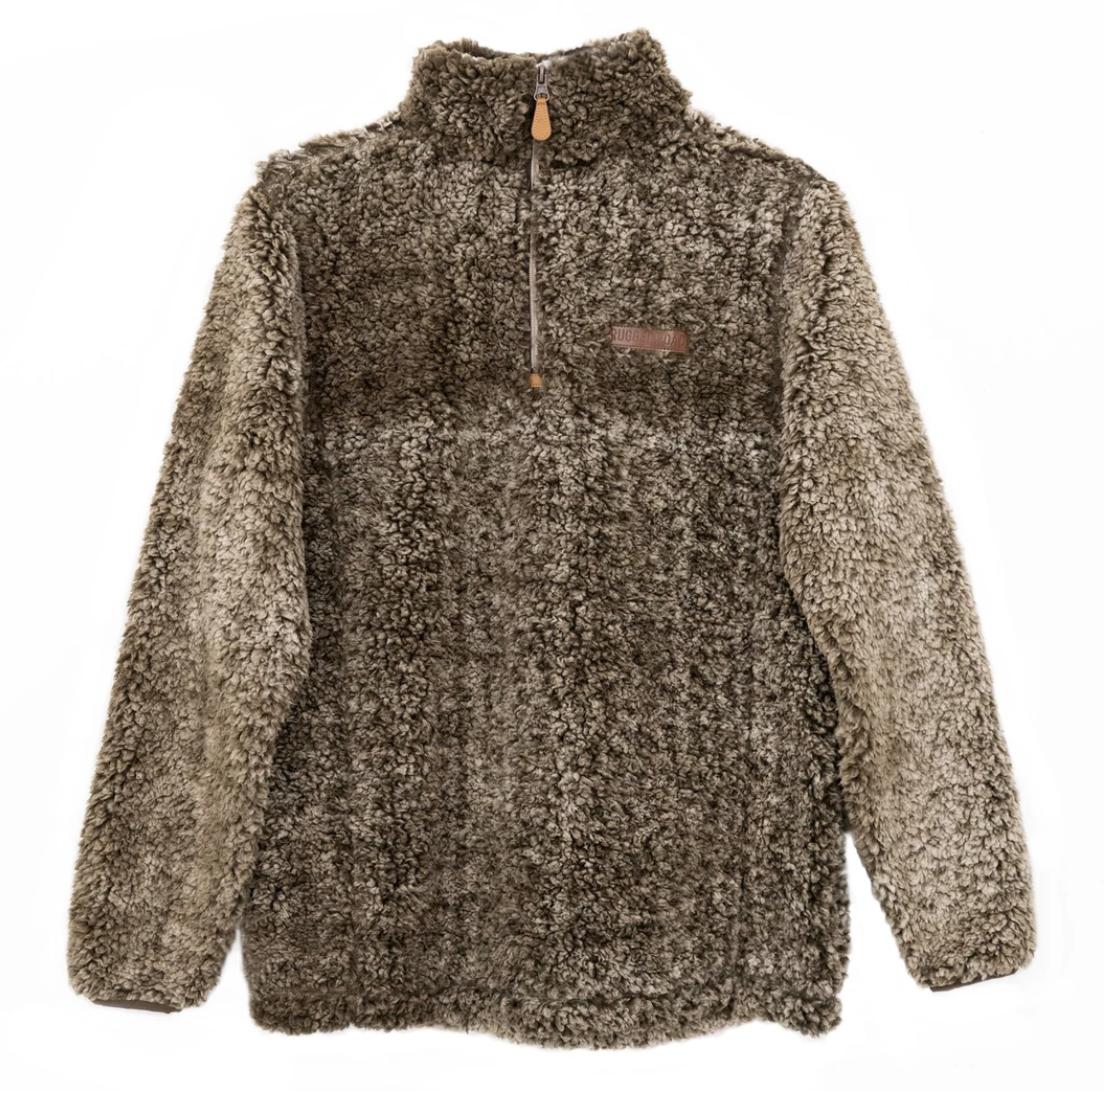 Rugged Road Pullover - Brown